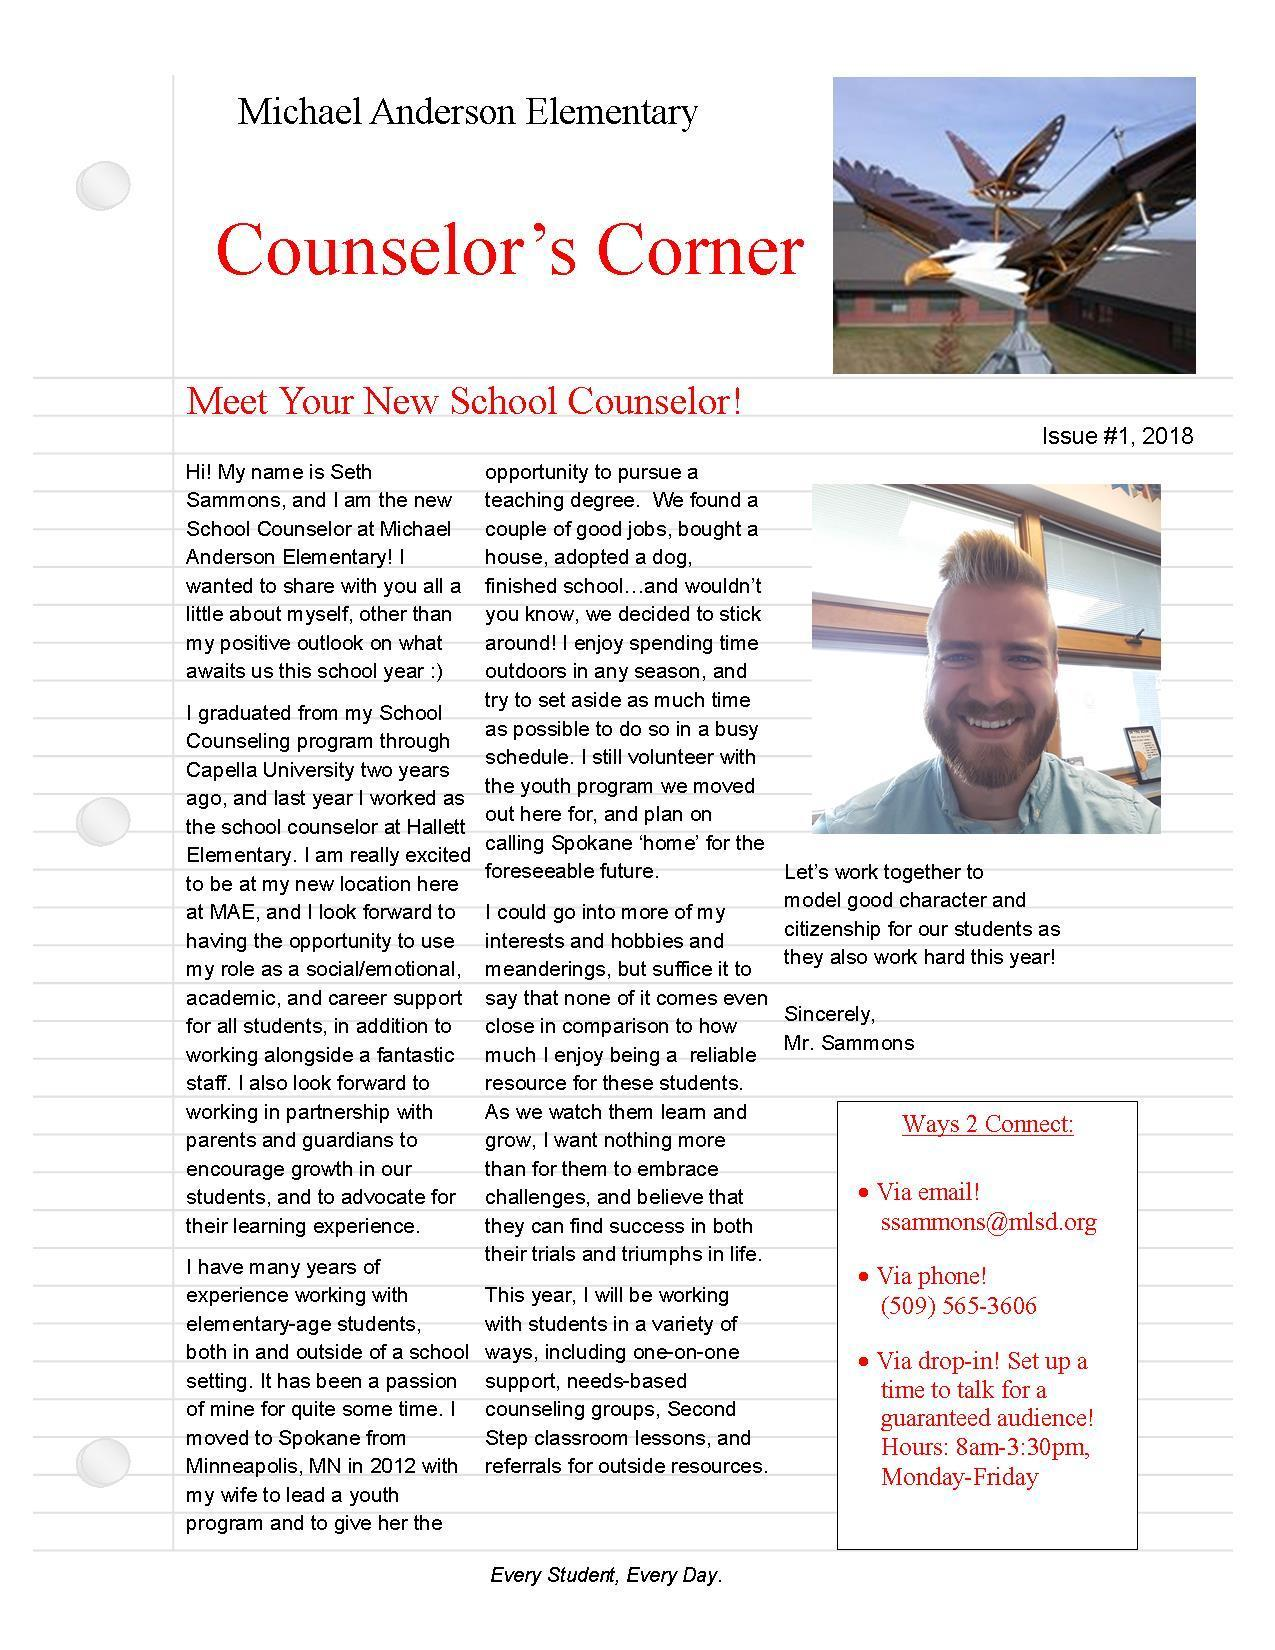 School Counselor Information